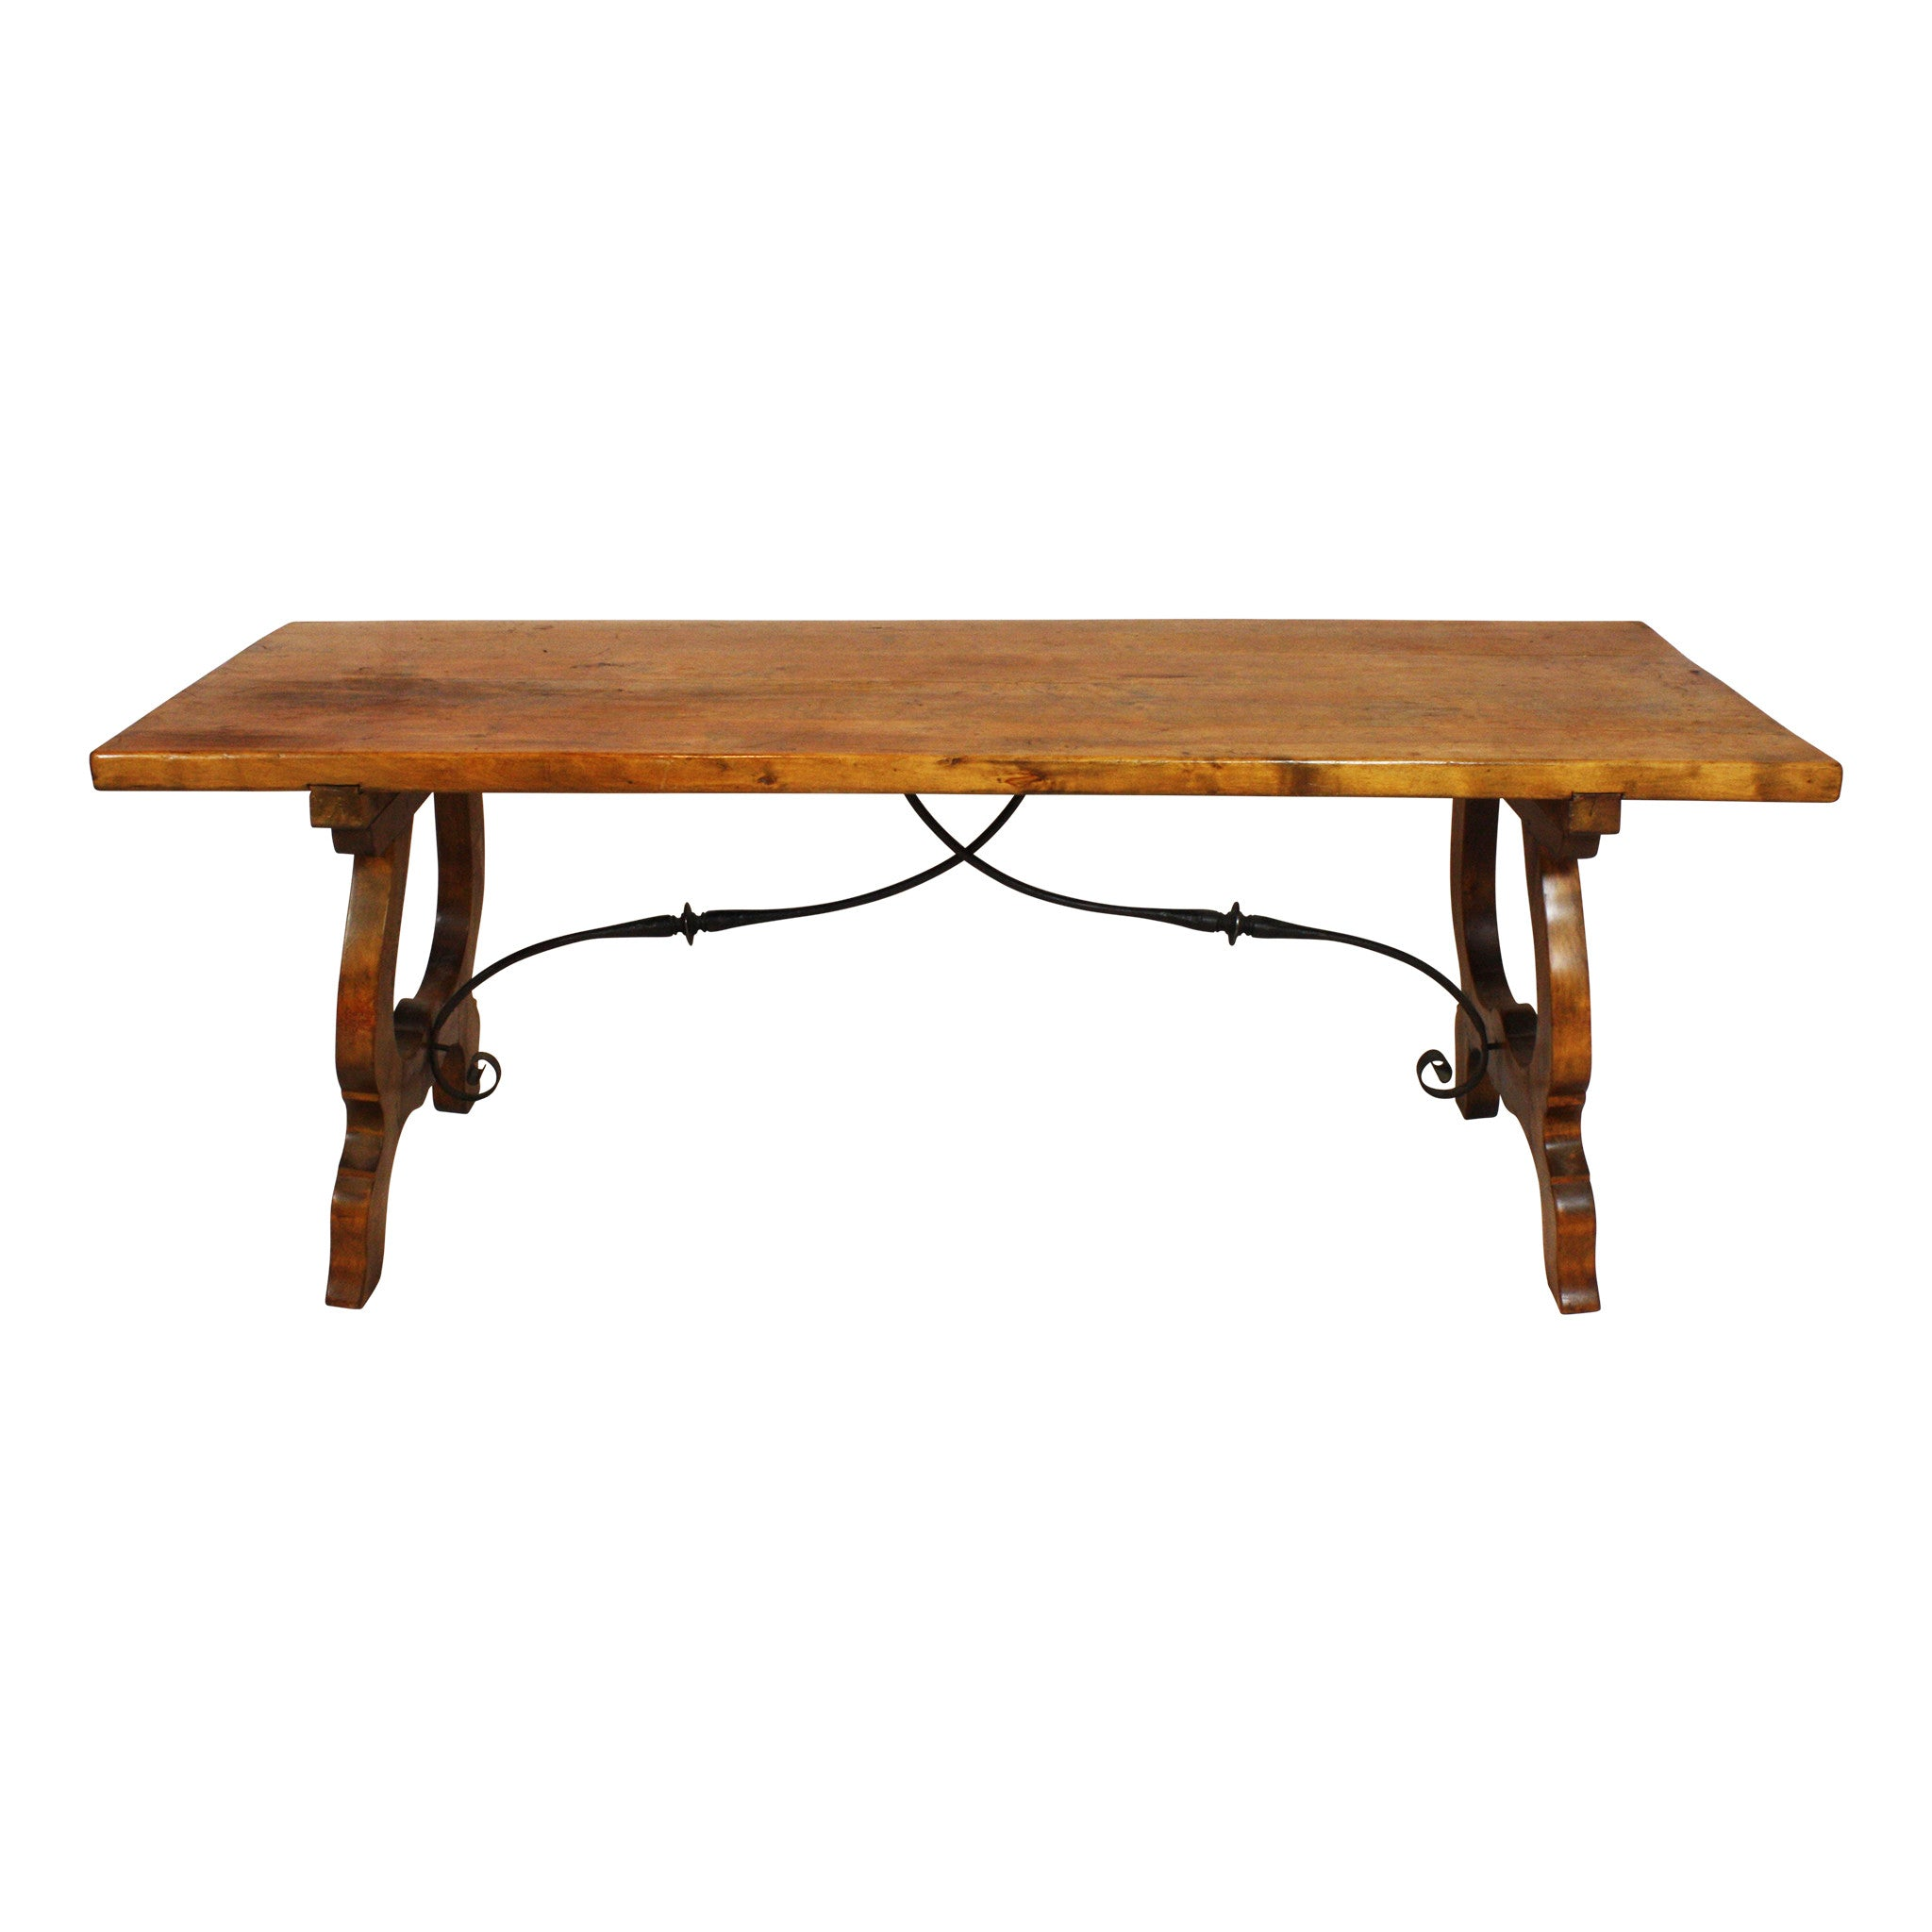 Spanish Oak Table with Cast Iron Scroll Work